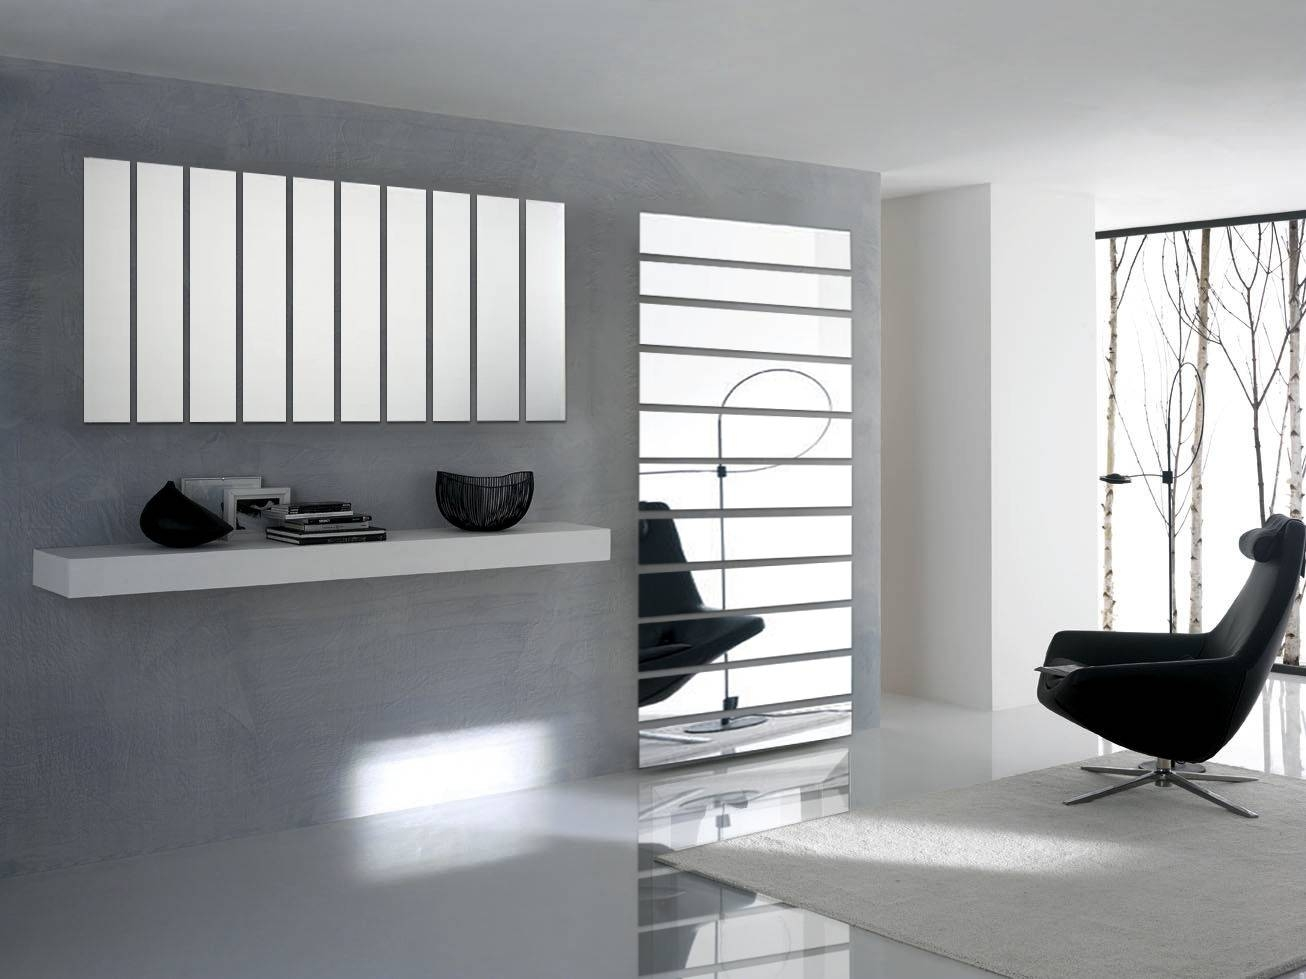 Bedroom : Trendy Images Of In Photography Ideas Modern Mirror Wall Within Most Current Modern Mirror Wall Art (View 17 of 20)